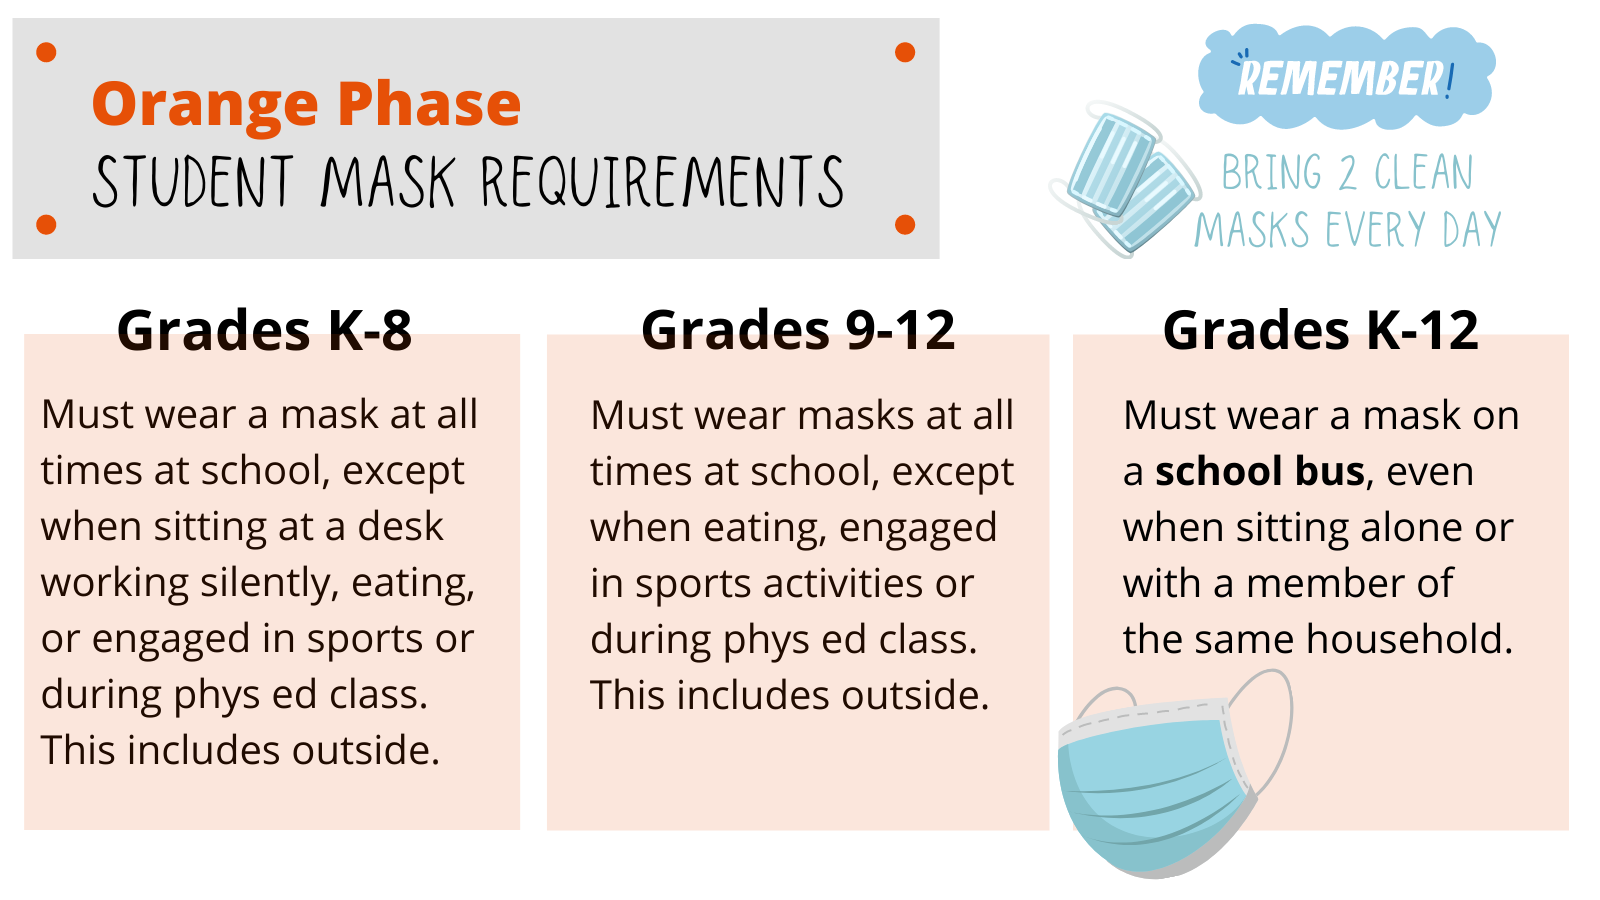 Orange Phase Mask Requirements.png